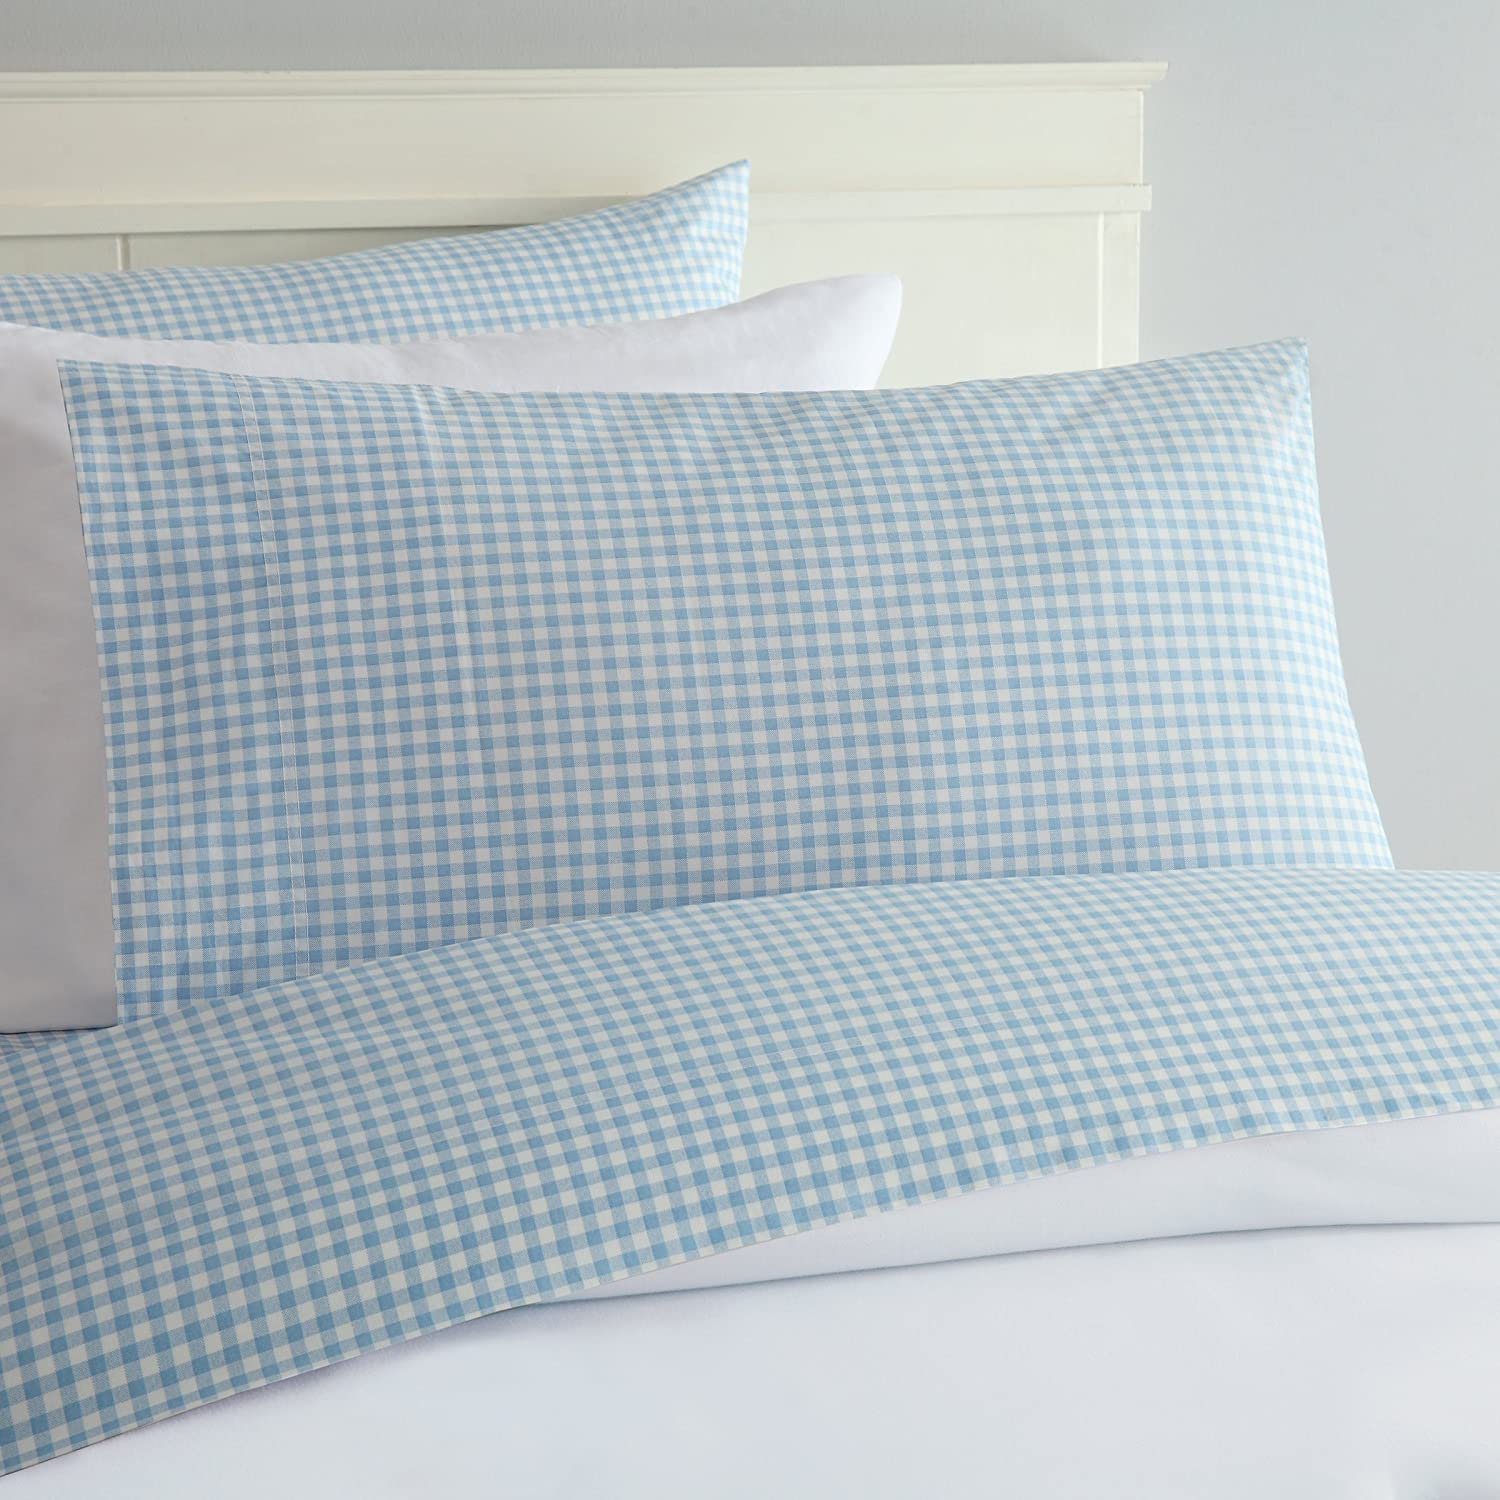 Laurel & Mayfair Gingham Cotton Sheet Set (King, Blue)